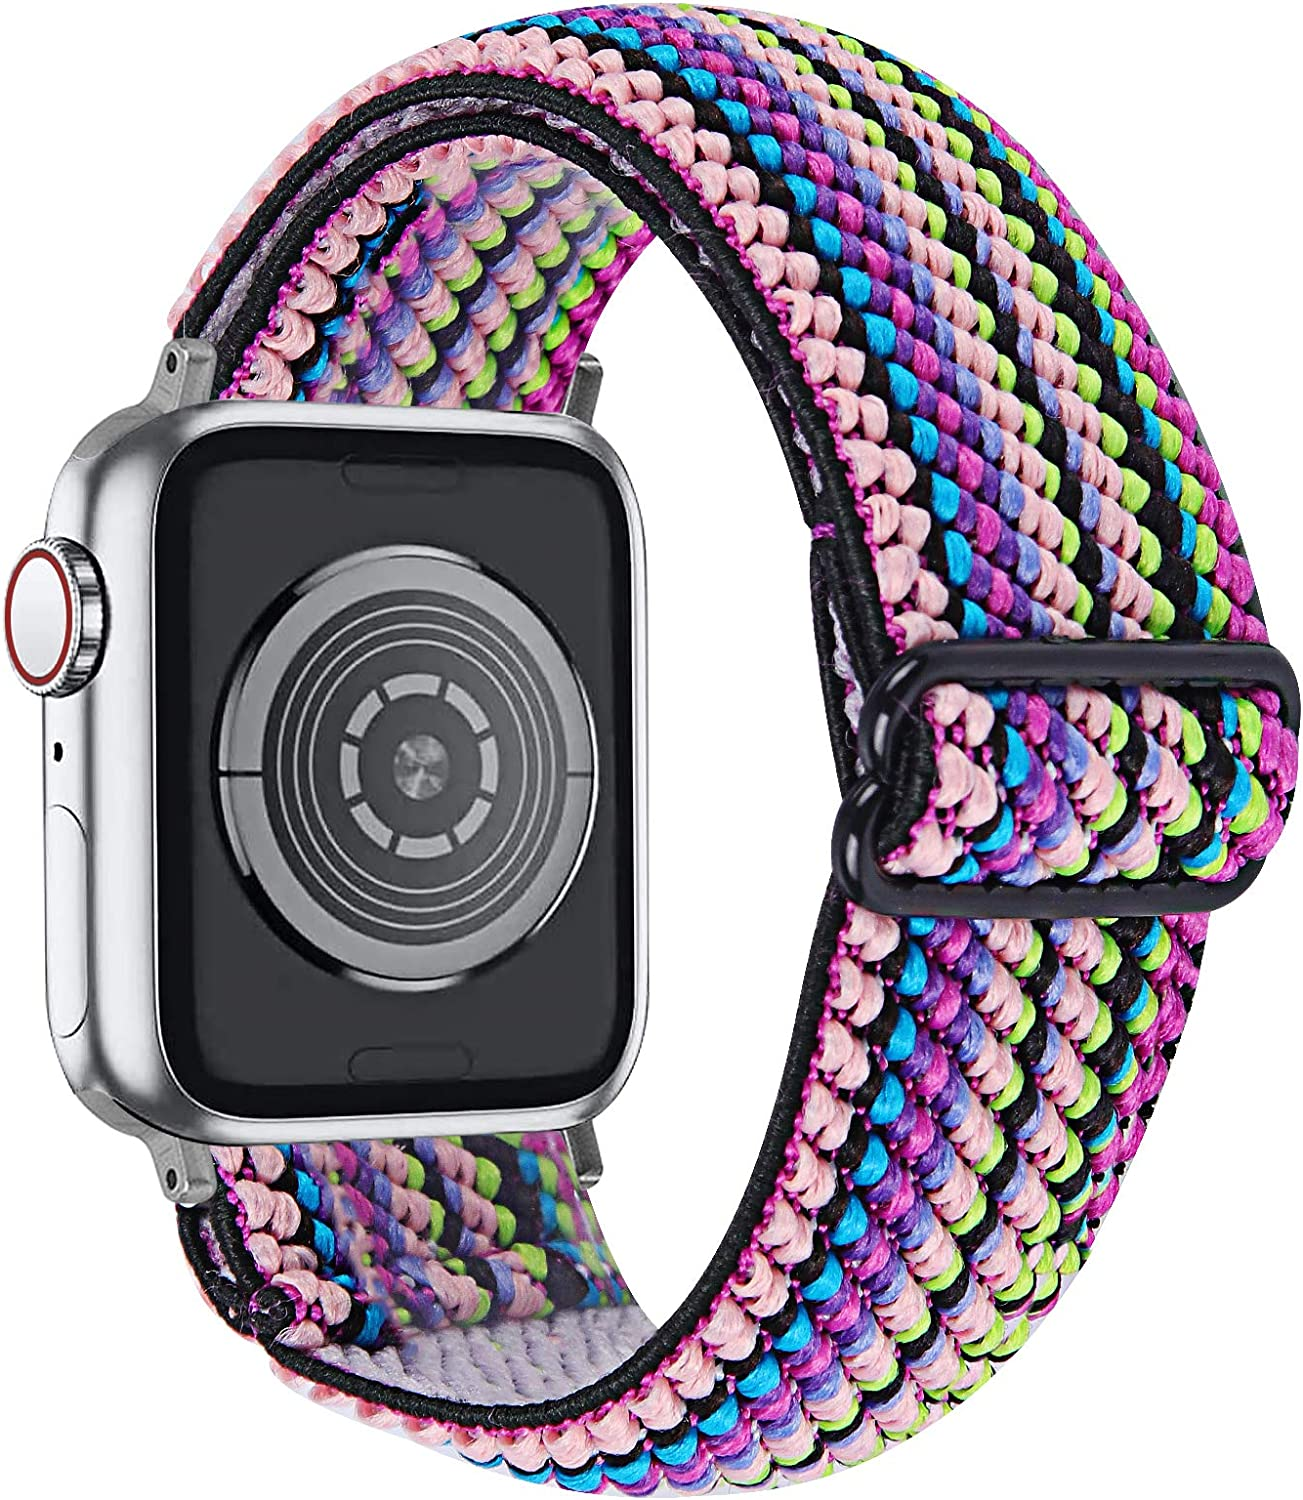 MEFEO Adjustable Elastic Bands Compatible with Apple Watch Bands 38mm 40mm 42mm 44mm, Soft Stretch Bracelet Replacement for iWatch Series 6/5/4/3/2/1 & SE Women Girls (Rainbow, 38mm/40mm)